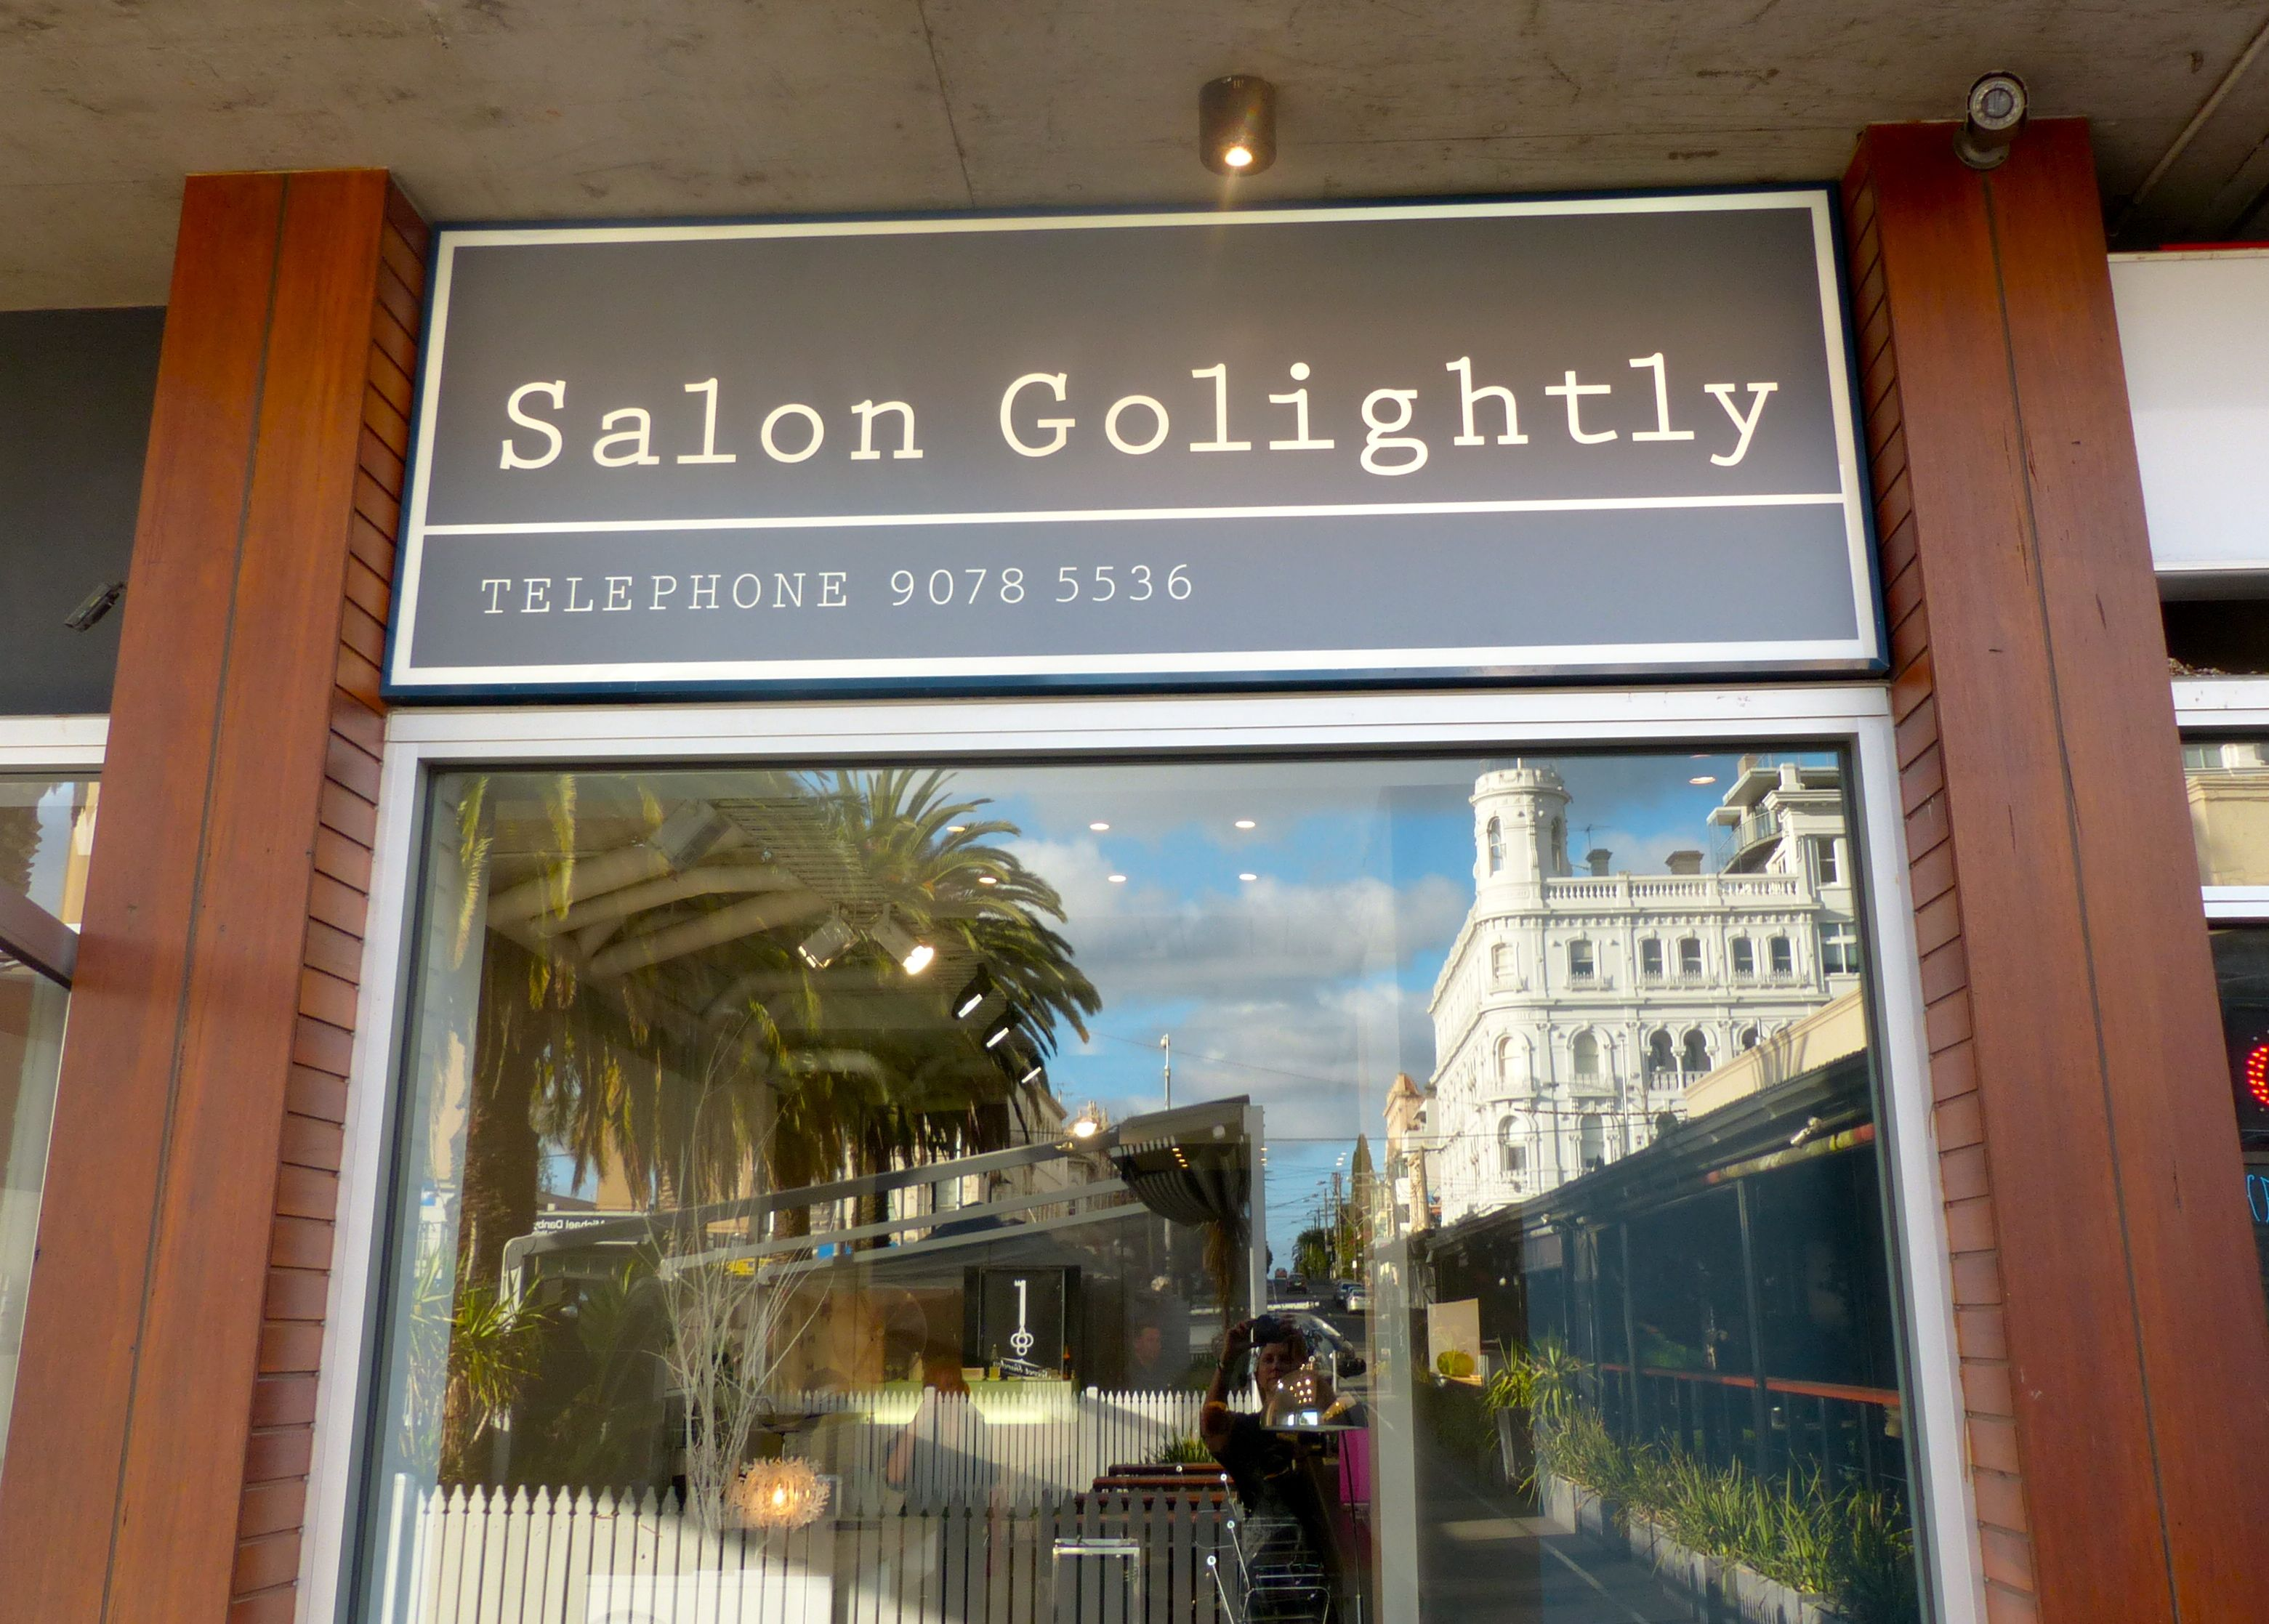 Salon Golightly